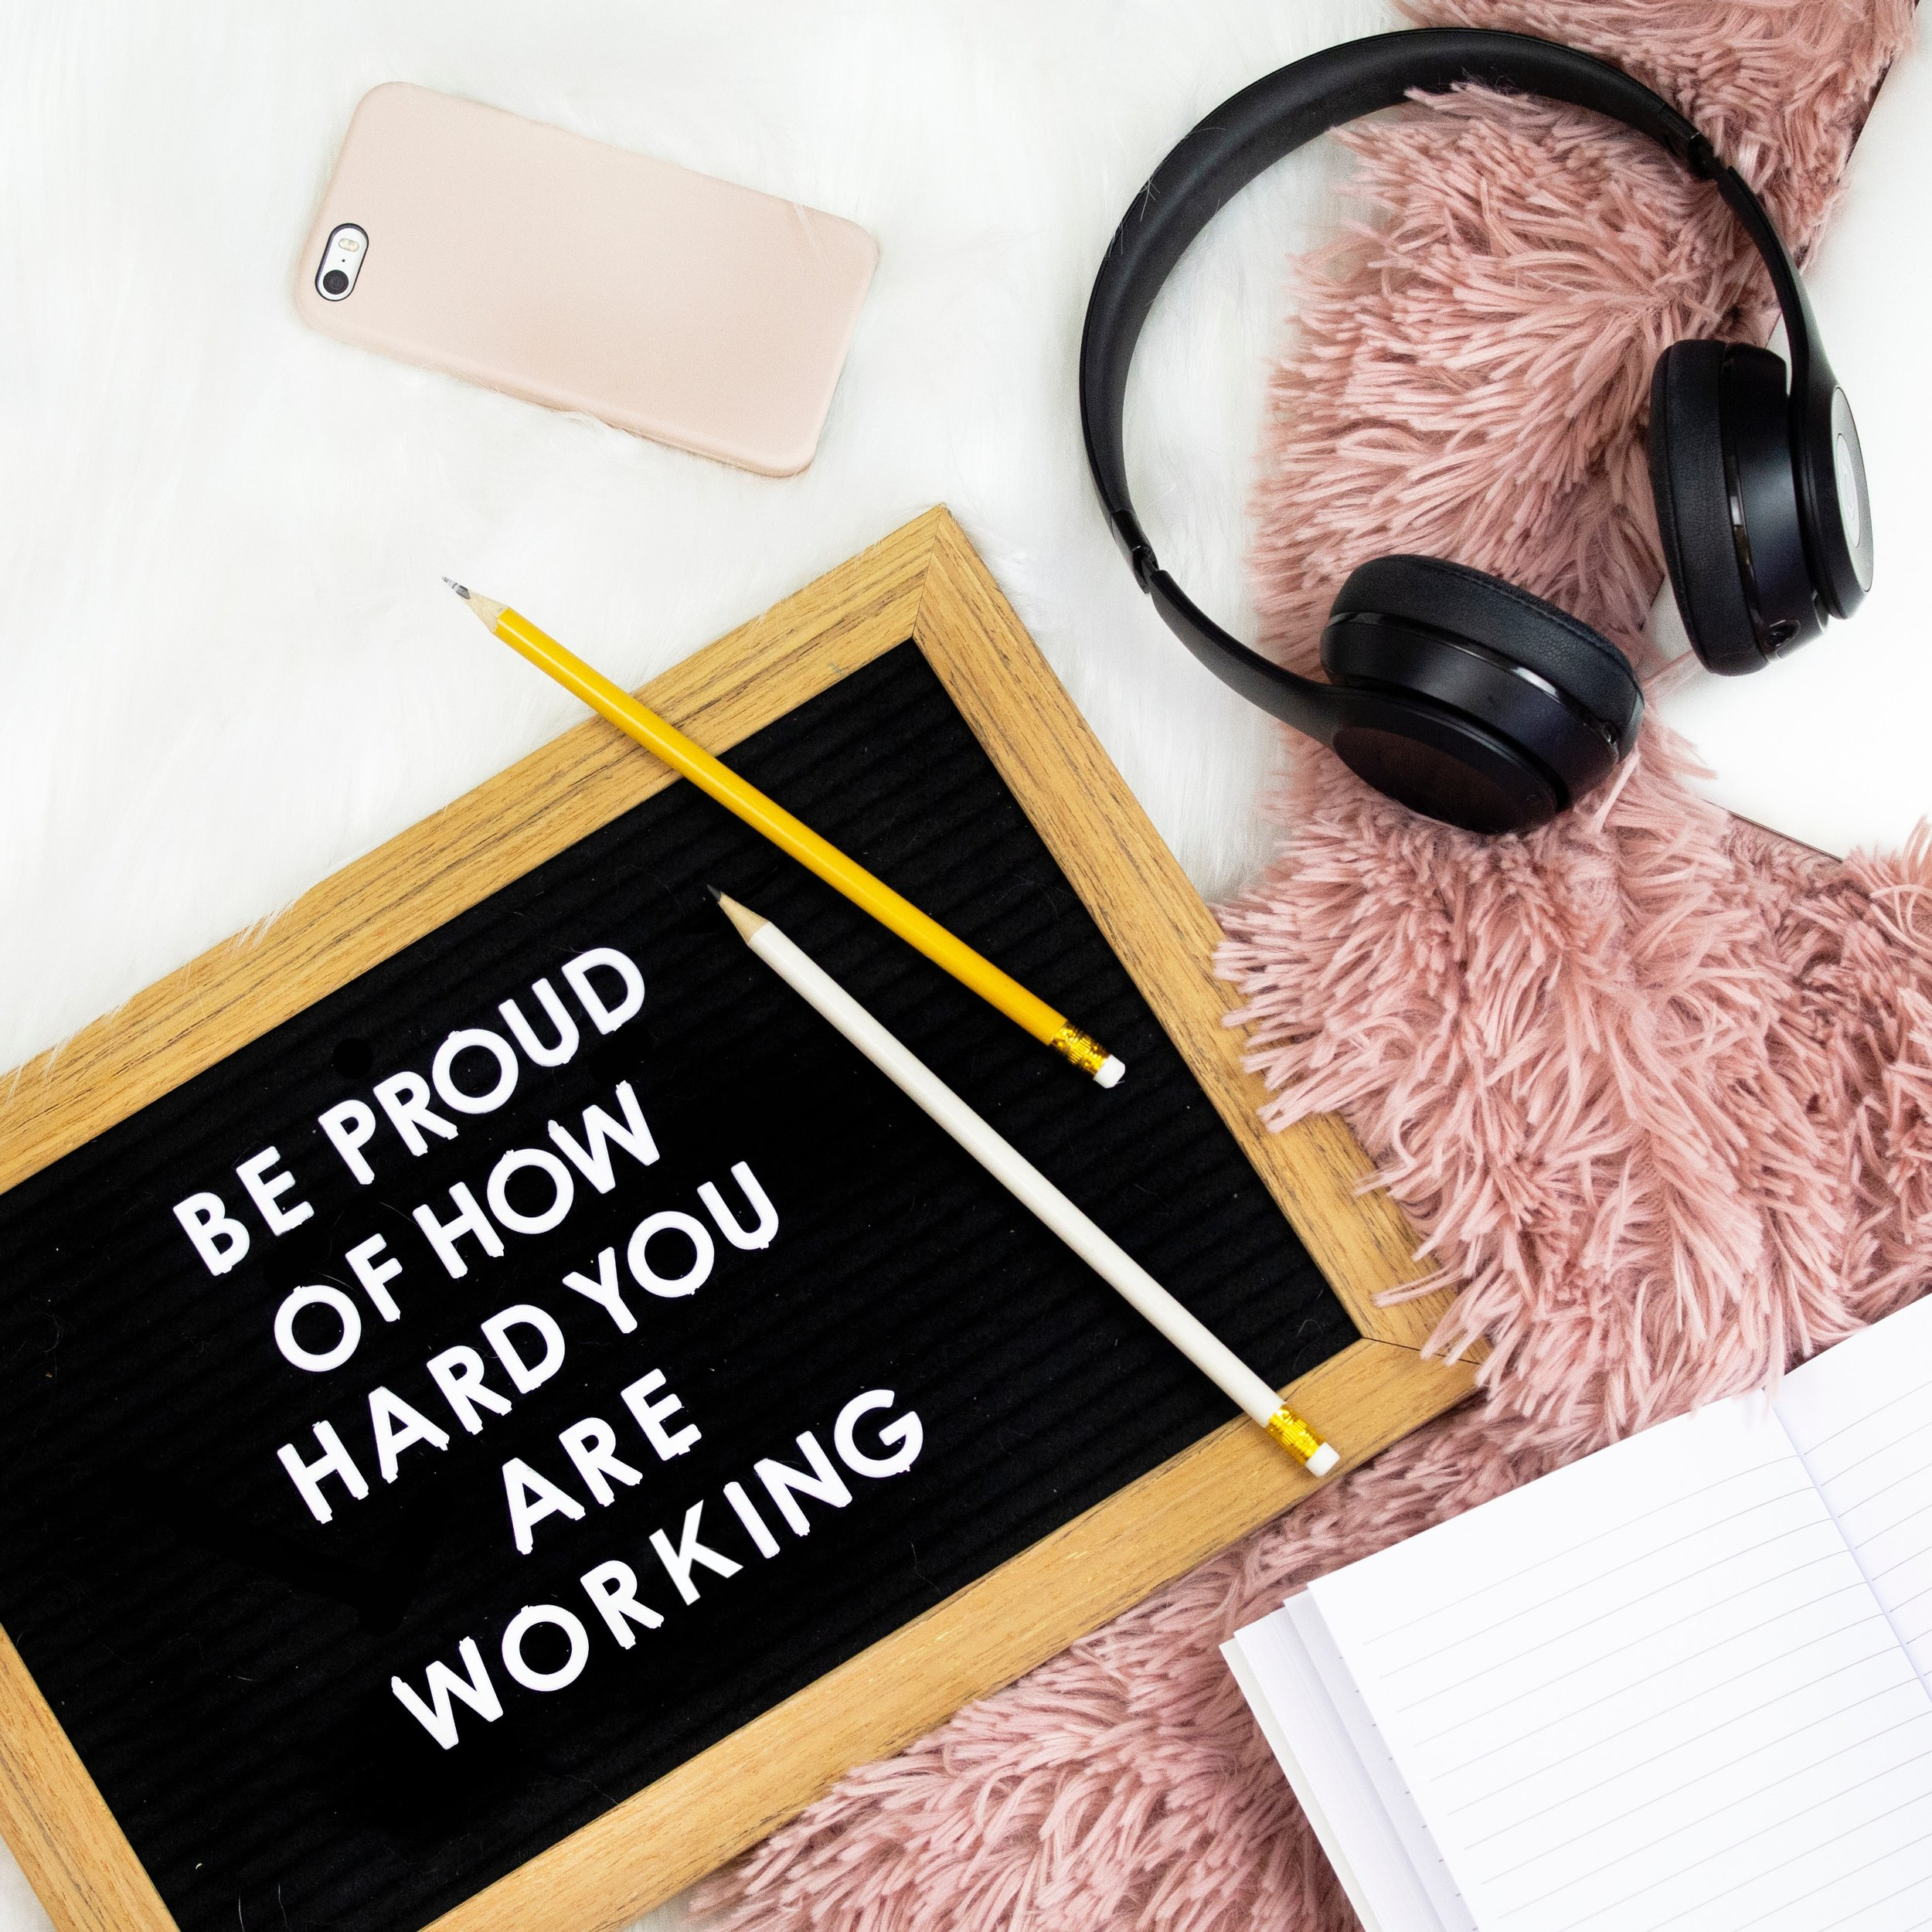 - What drives you to do what you do? Hang up inspirational quotes from people you admire or try a dream board! Whatever you need to keep you going. Every time you see that image or read that quote, you'll feel a spark of inspiration.